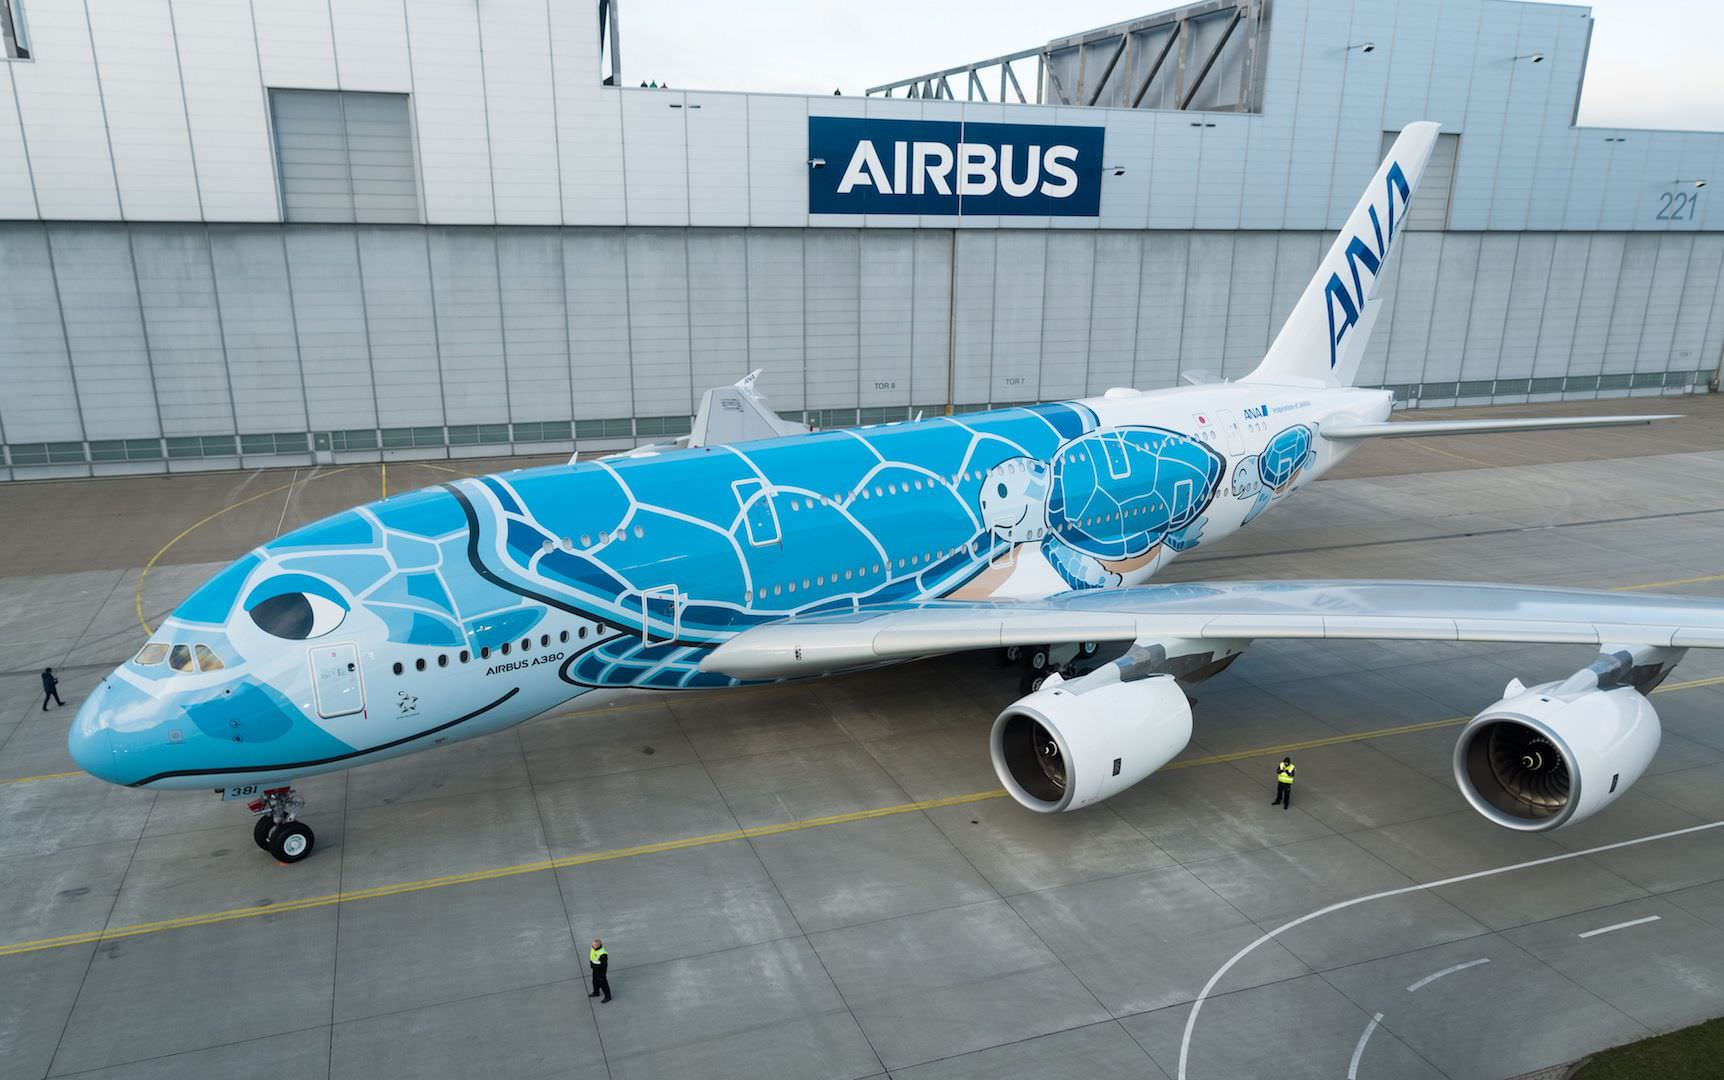 First-A380-ANA-rolls-out-of-paintshop-1